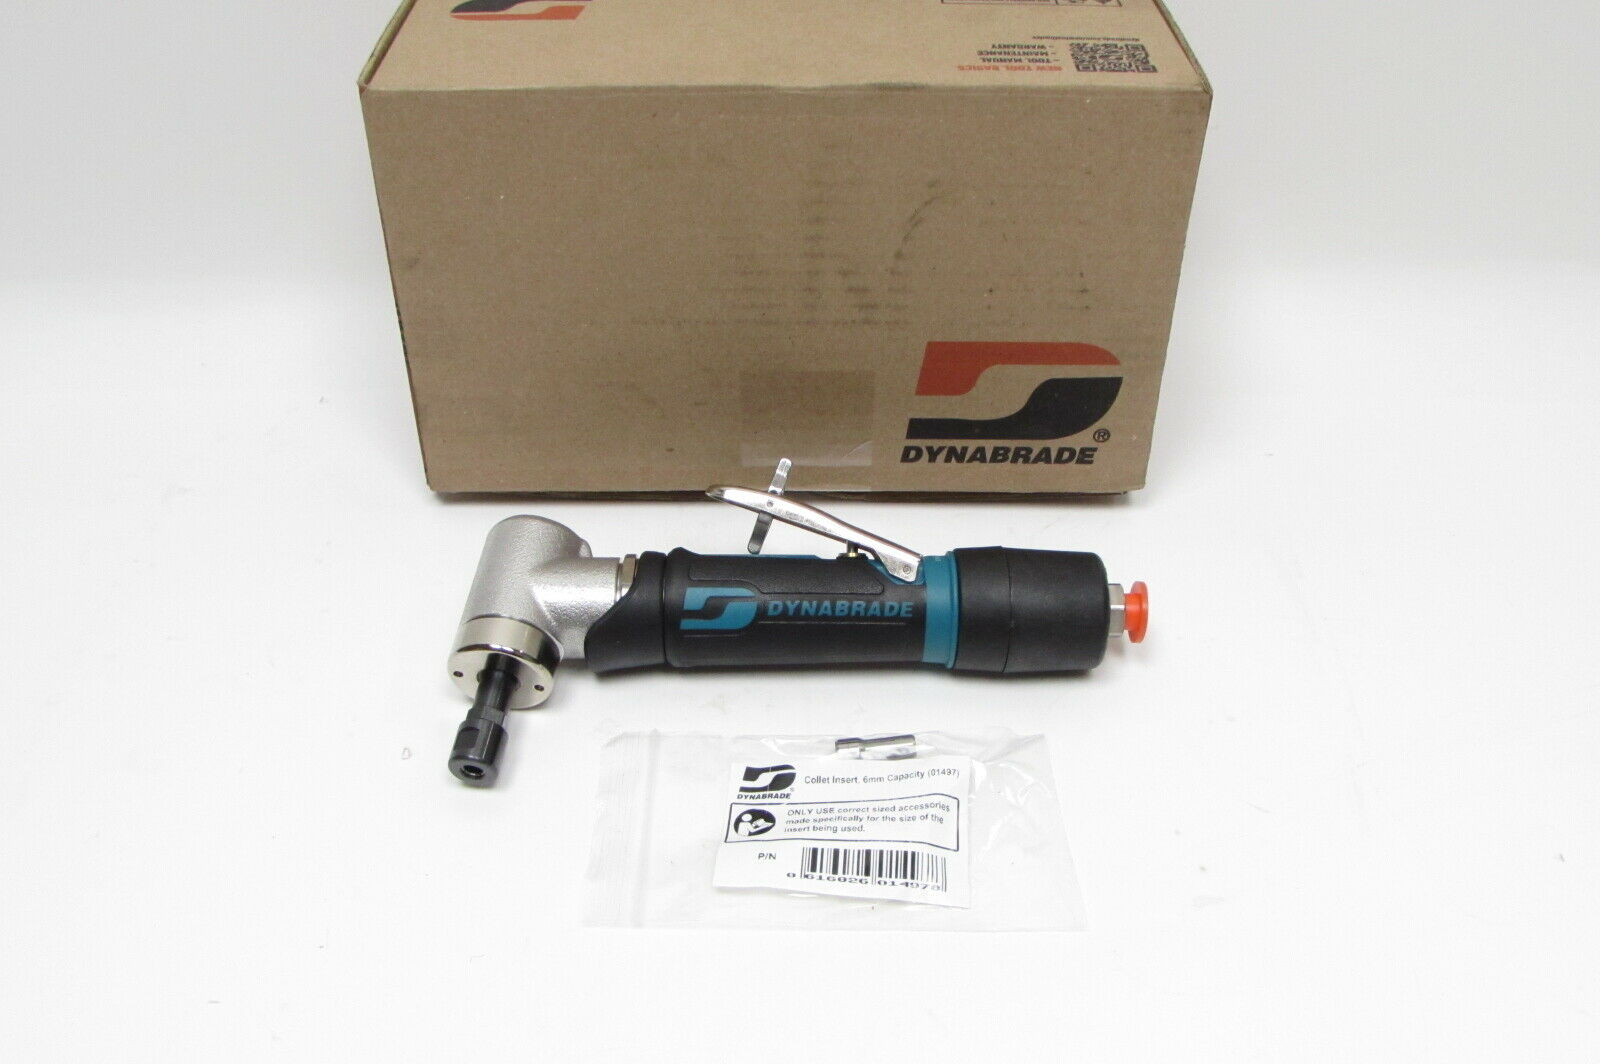 Dynabrade 48205 Offset Die Grinder - 7-Degree - 0.4 HP. Buy it now for 179.97